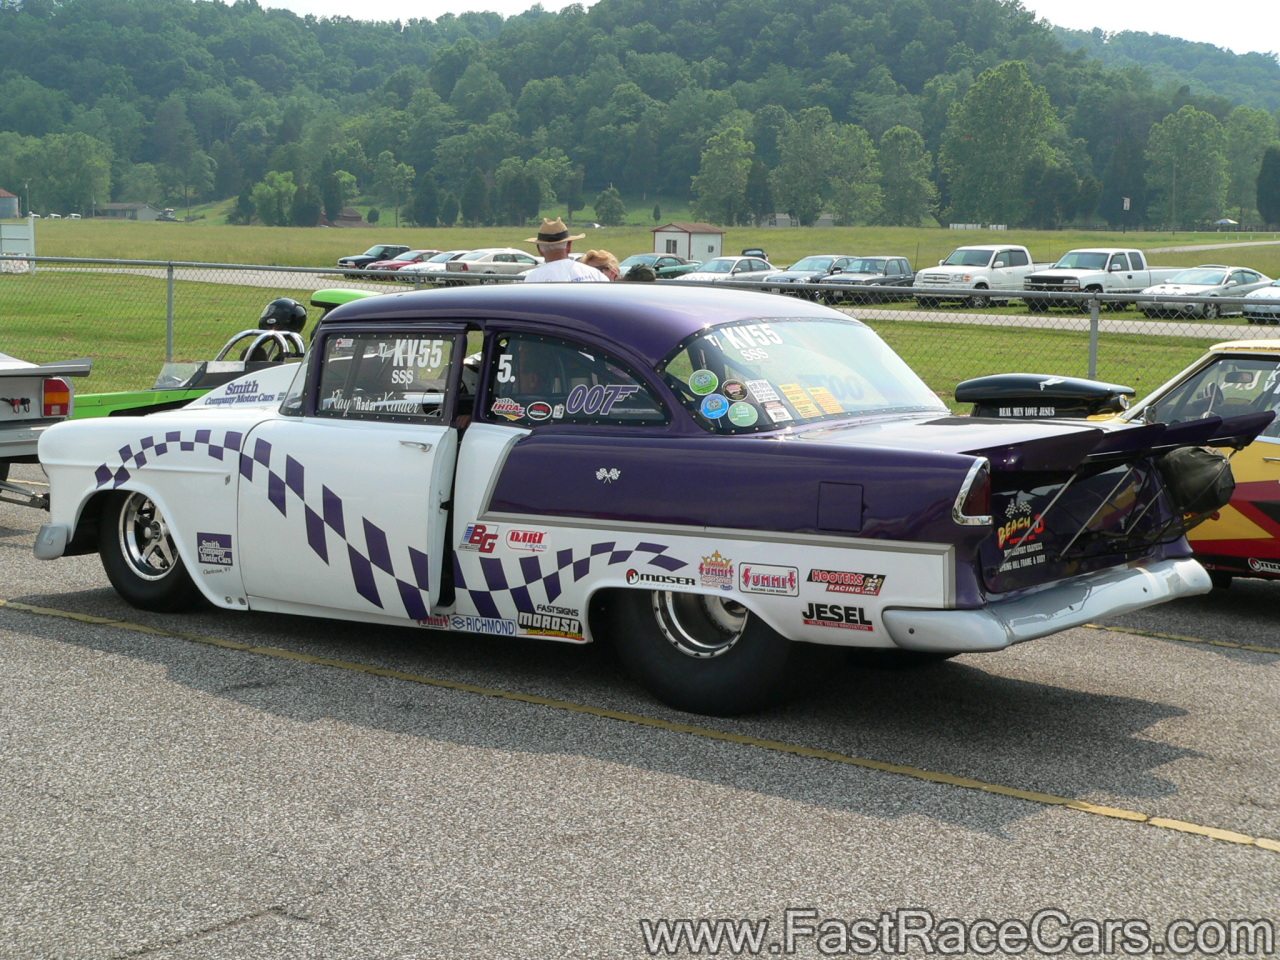 55 Chevy Drag Race Car http://www.fastracecars.com/categories/Drag%20Race%20Cars/55%20-%2057%20Chevrolets/large/shoebox-7.html